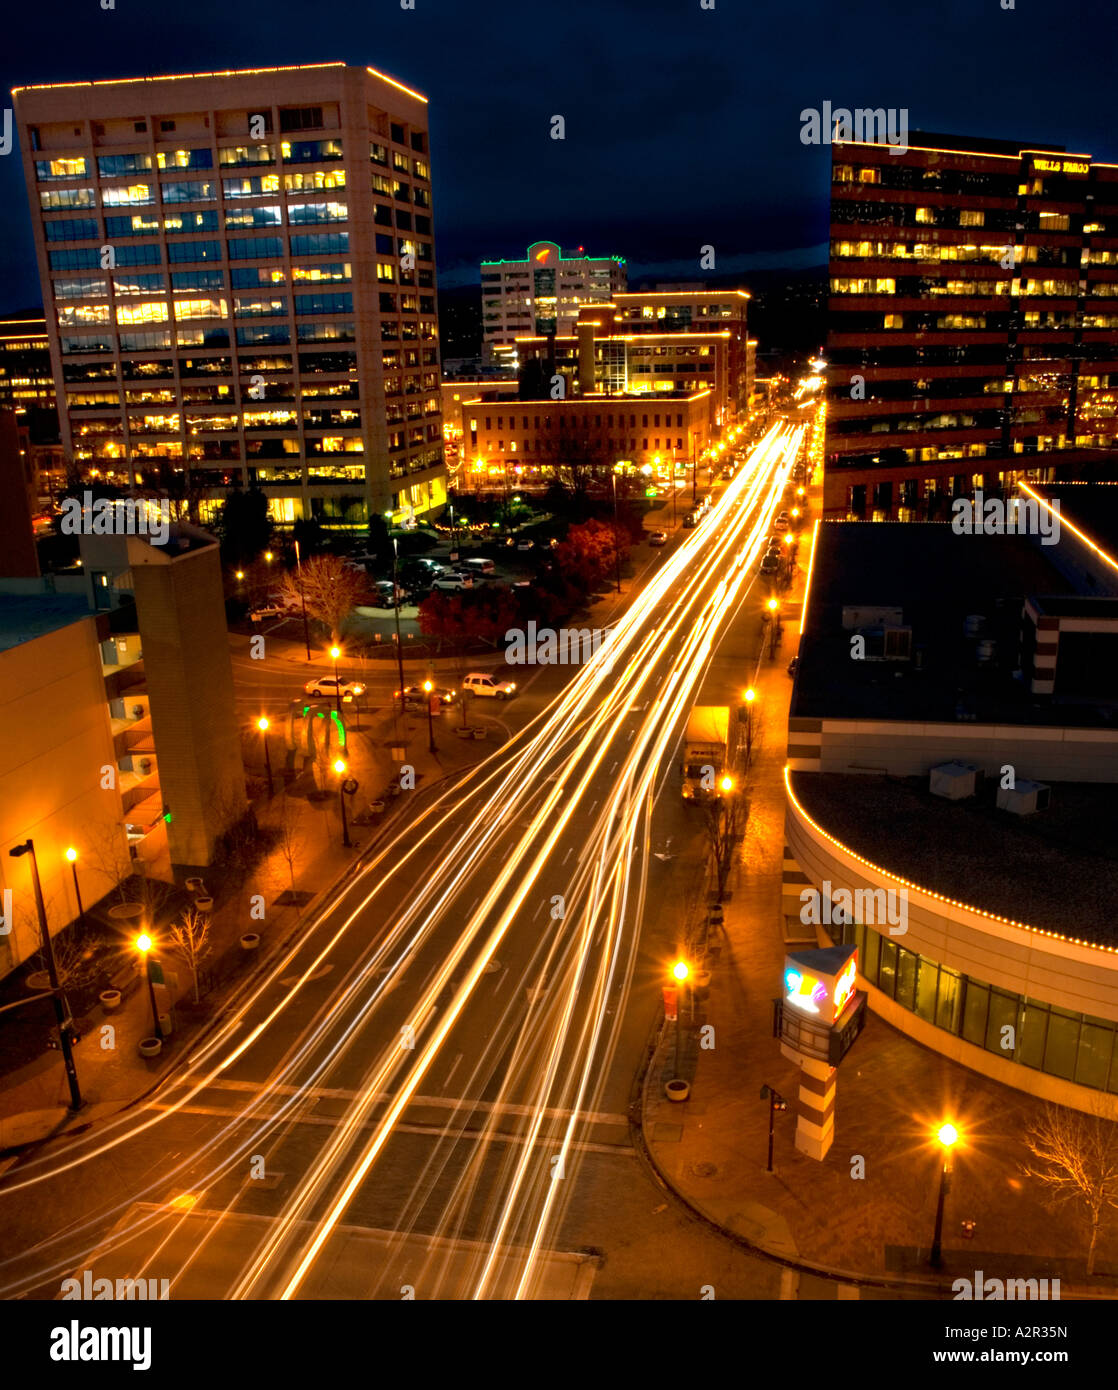 Boise Idaho In Evening Stock Photos & Boise Idaho In Evening Stock ...